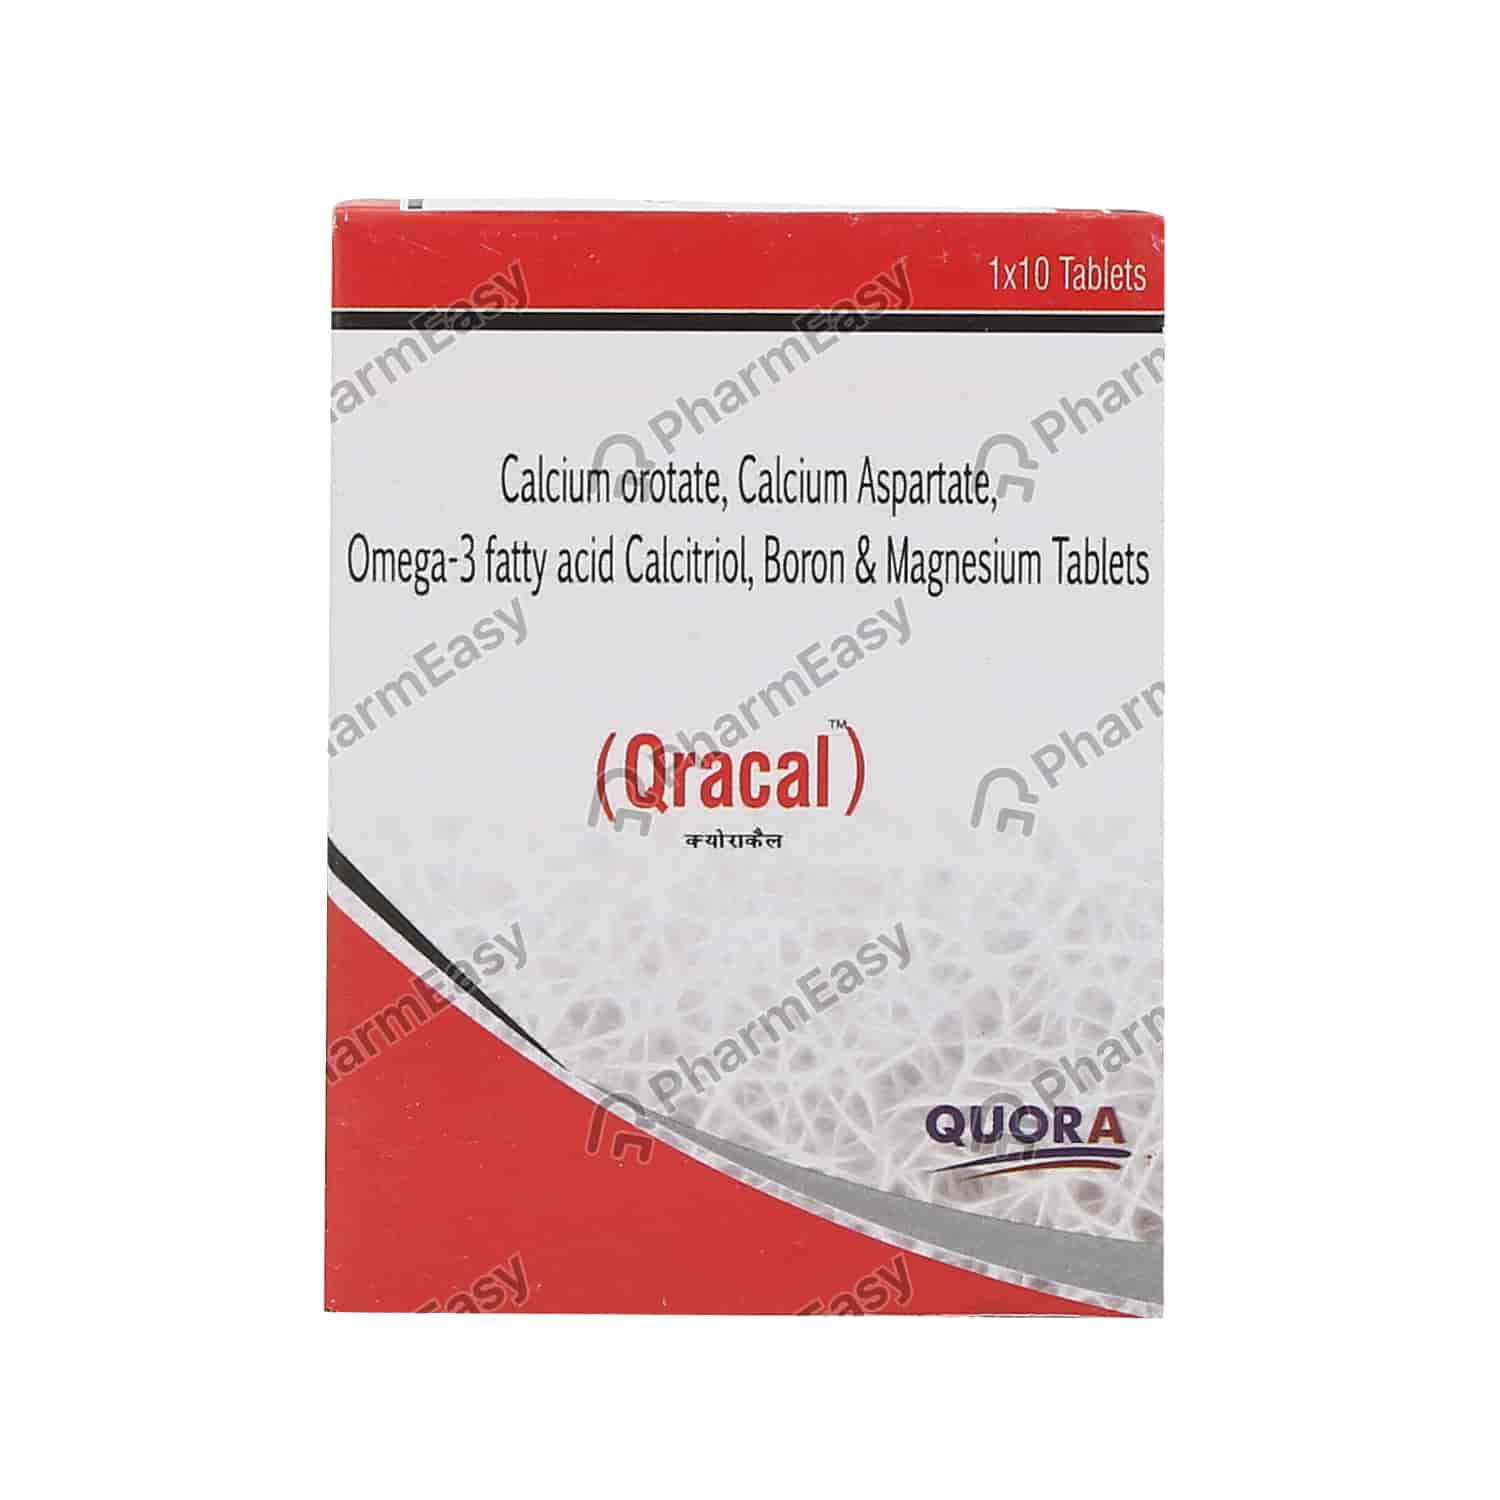 Qracal Tab 10's